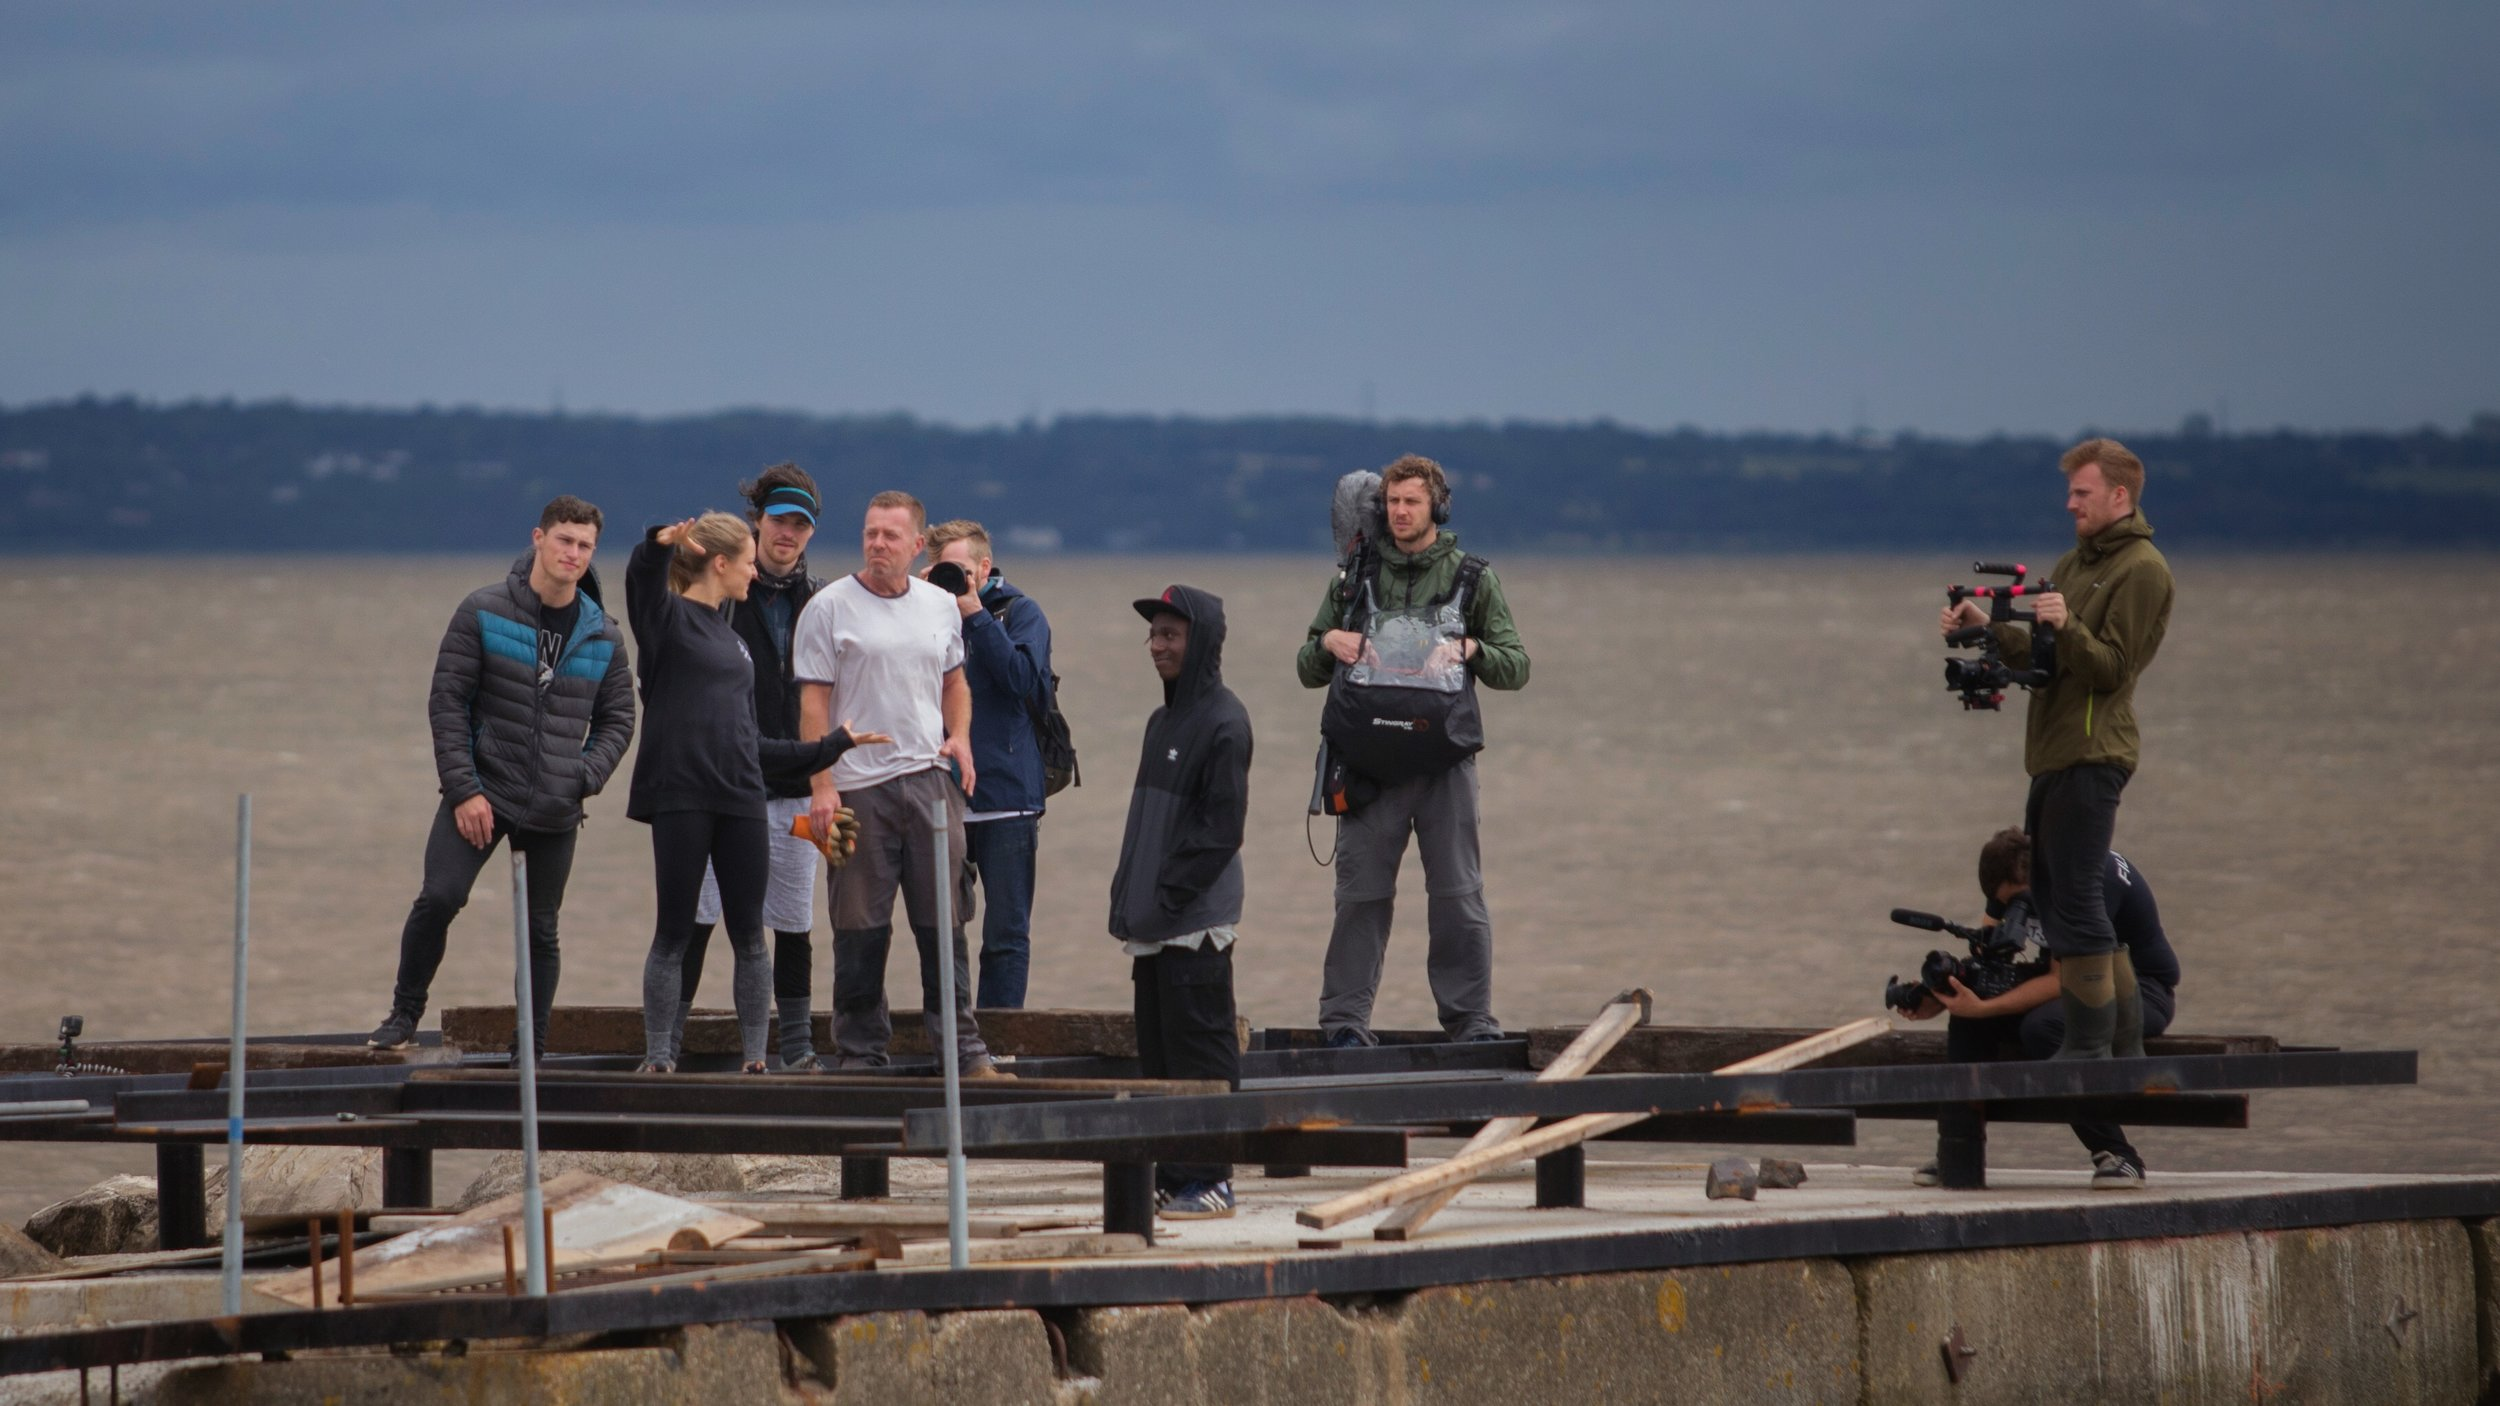 Life on the road - The crew on location during the 18 day road trip which shot at at six locations around the UK